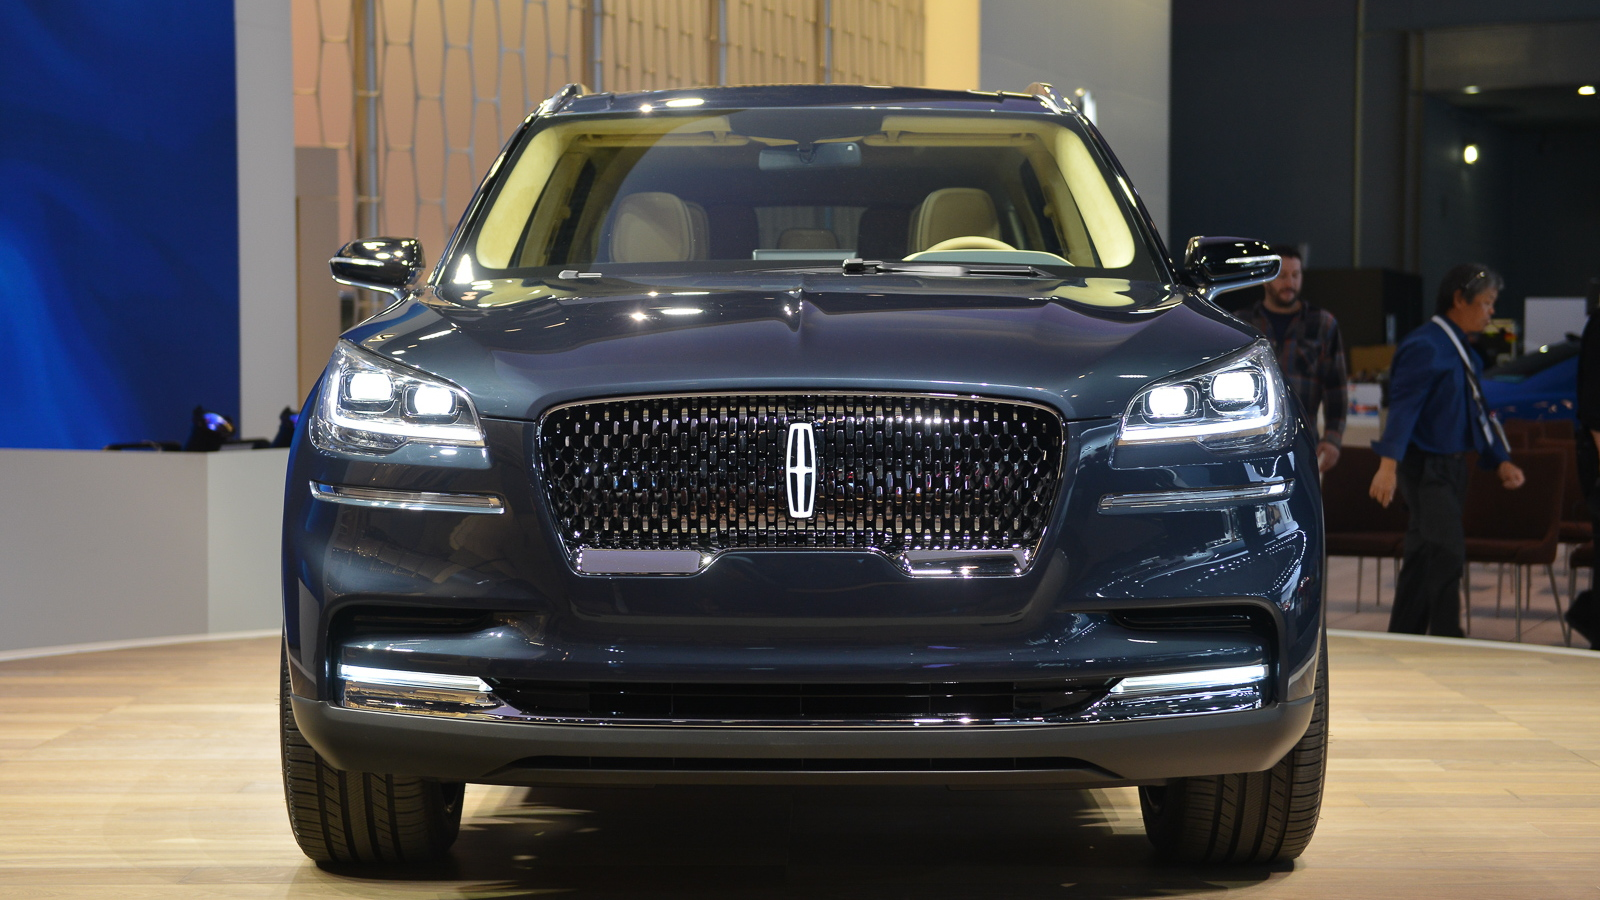 Lincoln Aviator SUV, 2018 New York auto show